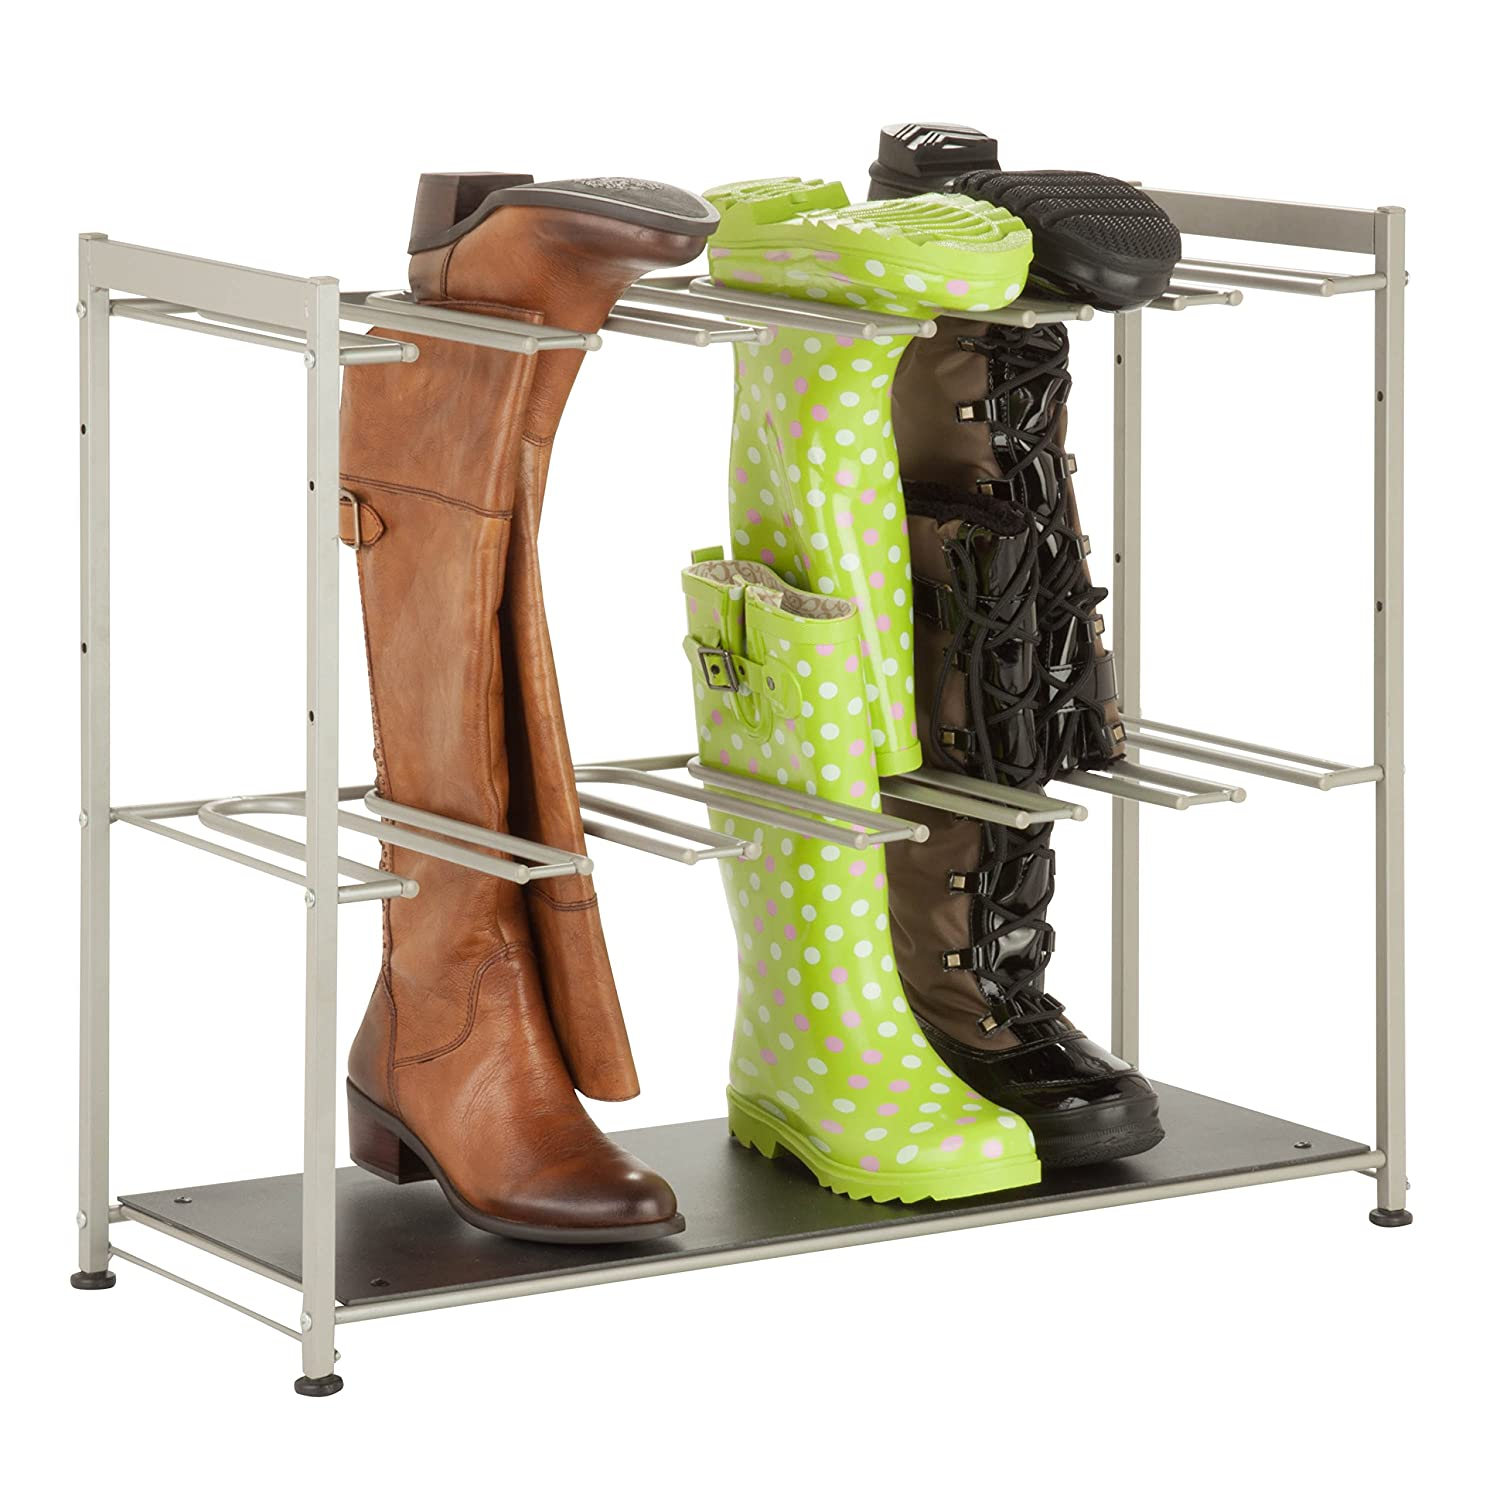 Honey-Can-Do SHO-02990 10-Tier Steel Rolling Shoe Tower, Holds Up to 50-Pairs, Chrome